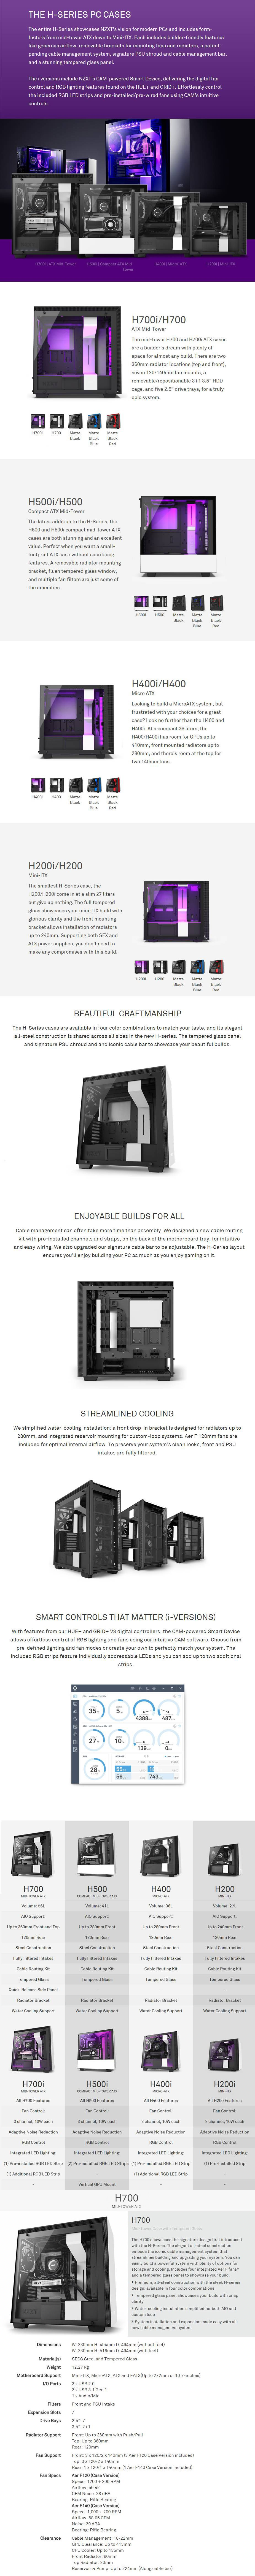 NZXT H700 Tempered Glass Mid-Tower E-ATX Case - Matte White - Desktop Overview 1